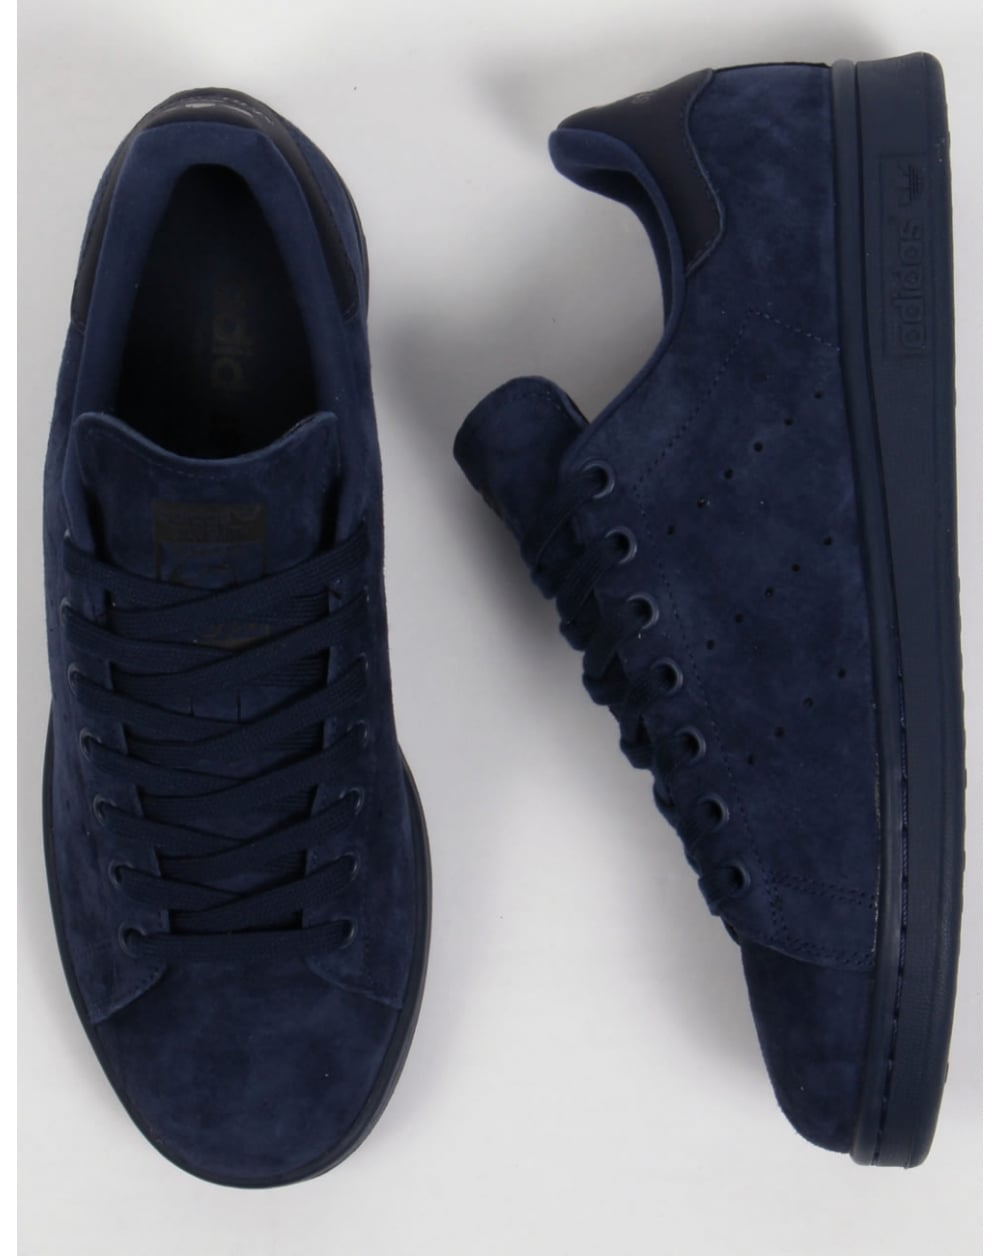 new products a8611 702ca Adidas Stan Smith Trainers Navy/navy/black